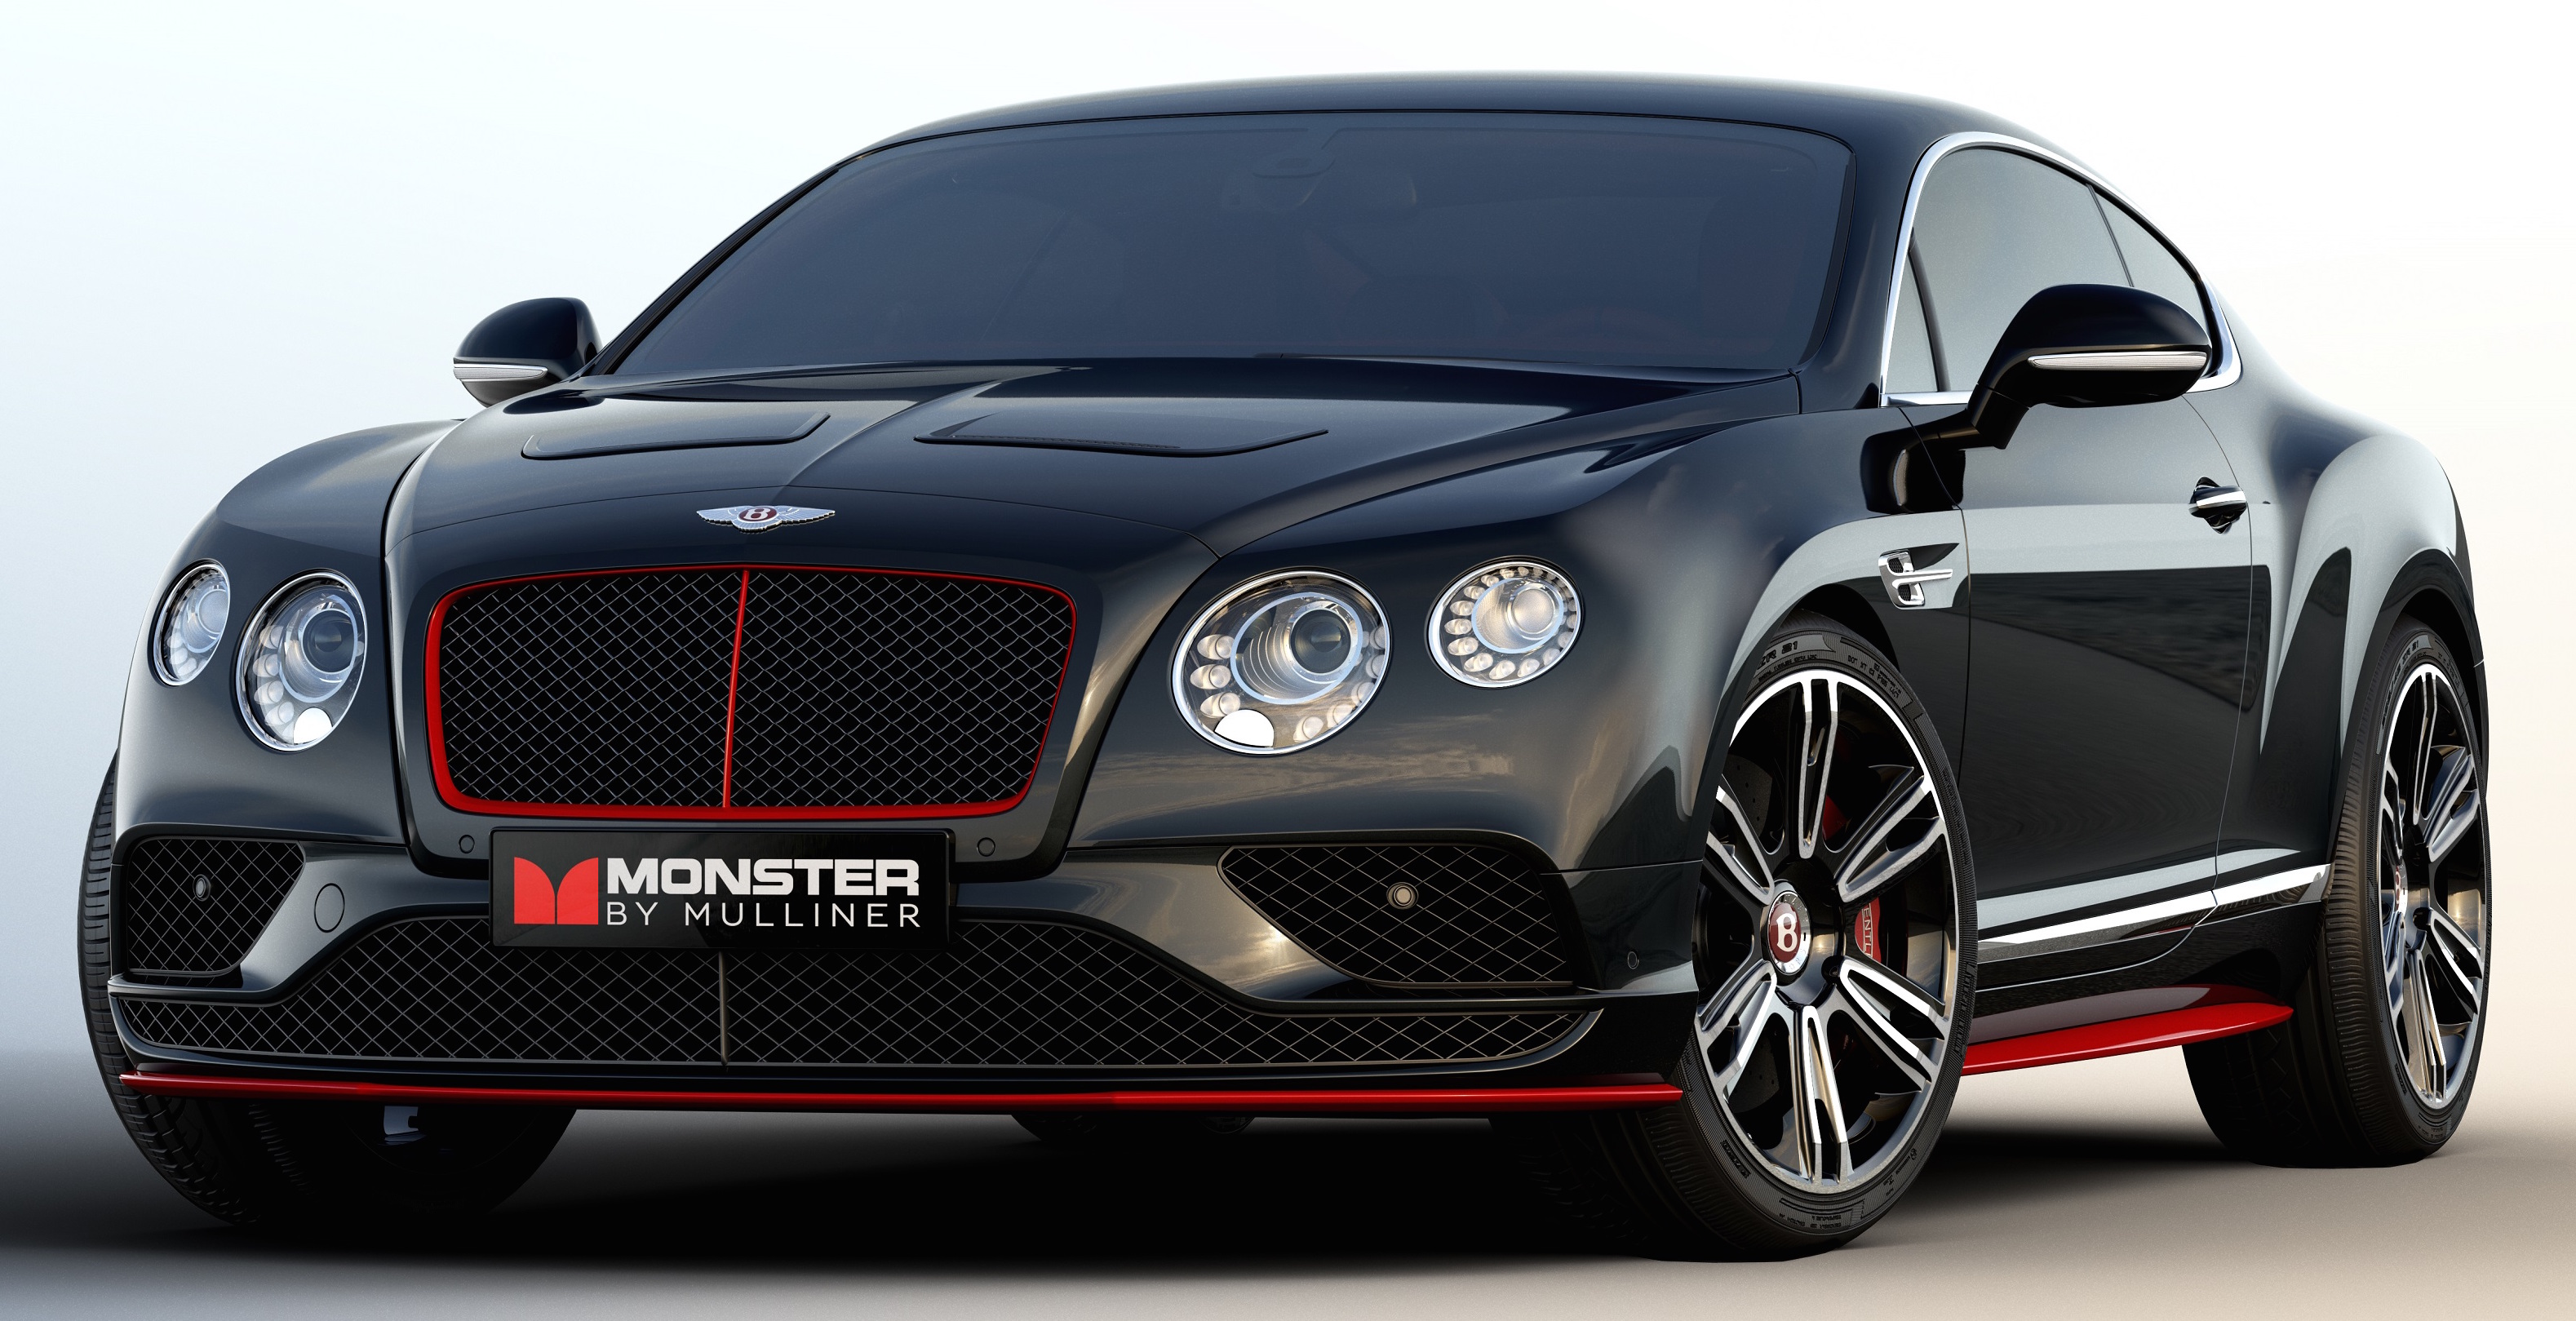 bentley continental gt monster by mulliner monster. Black Bedroom Furniture Sets. Home Design Ideas